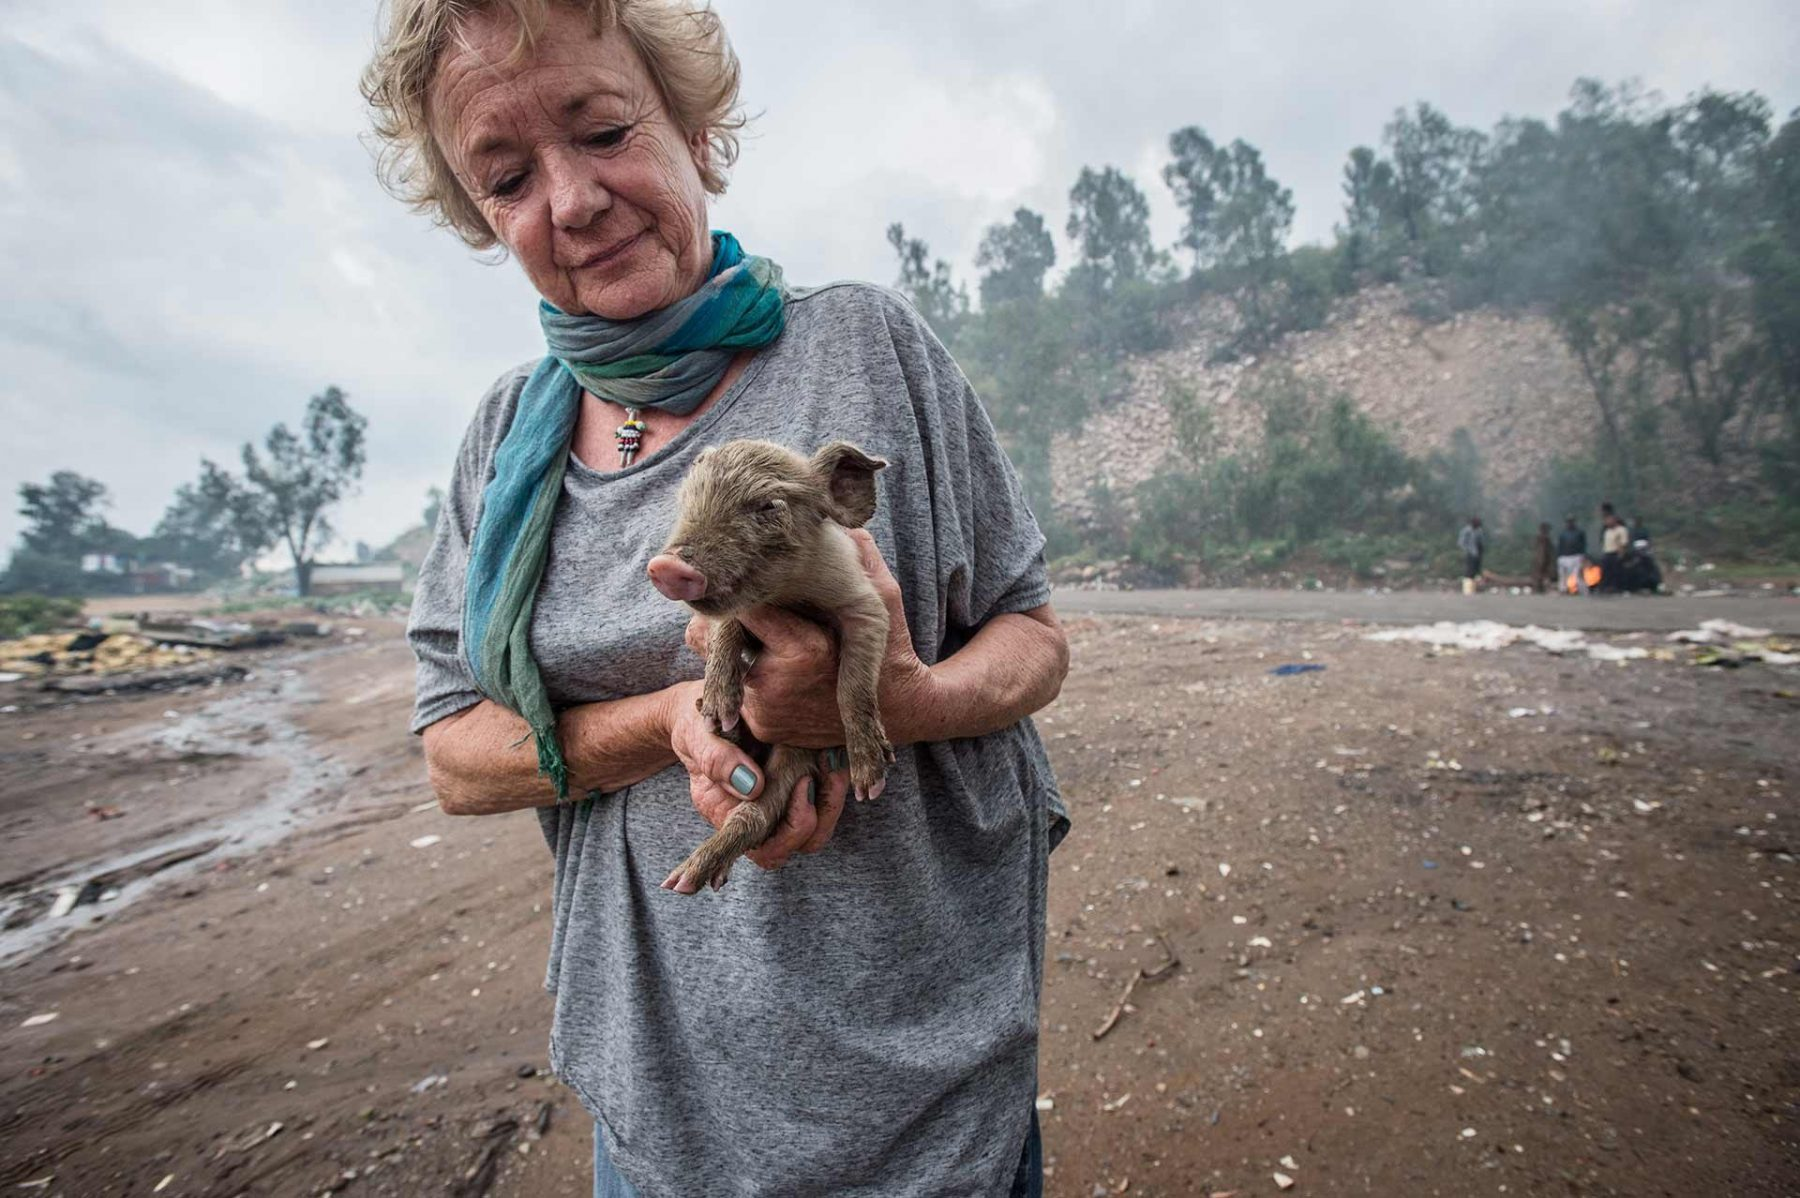 Cora Bailey, founder of Community Led Animal Welfare (CLAW), rescuing a piglet at the Randfontein Dump in Johanessburg. South Africa, 2016